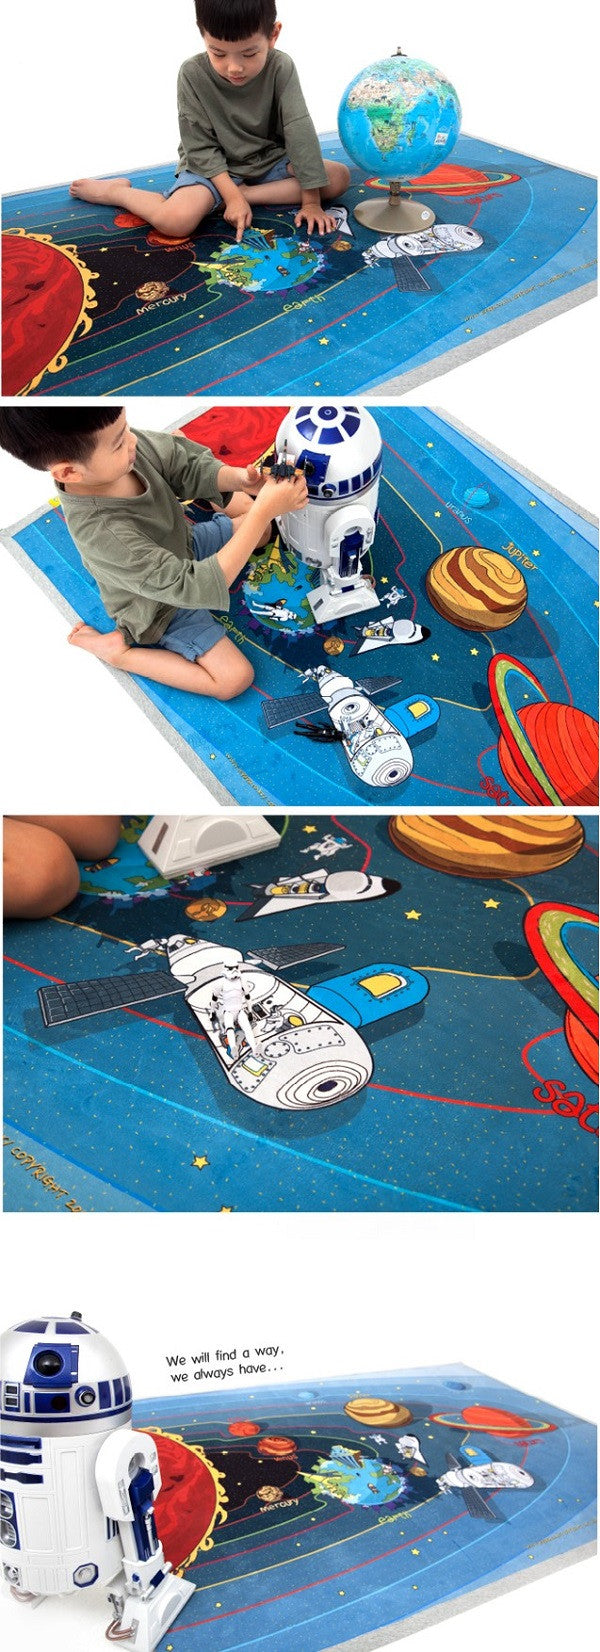 universe playmat kids spade learning carpet